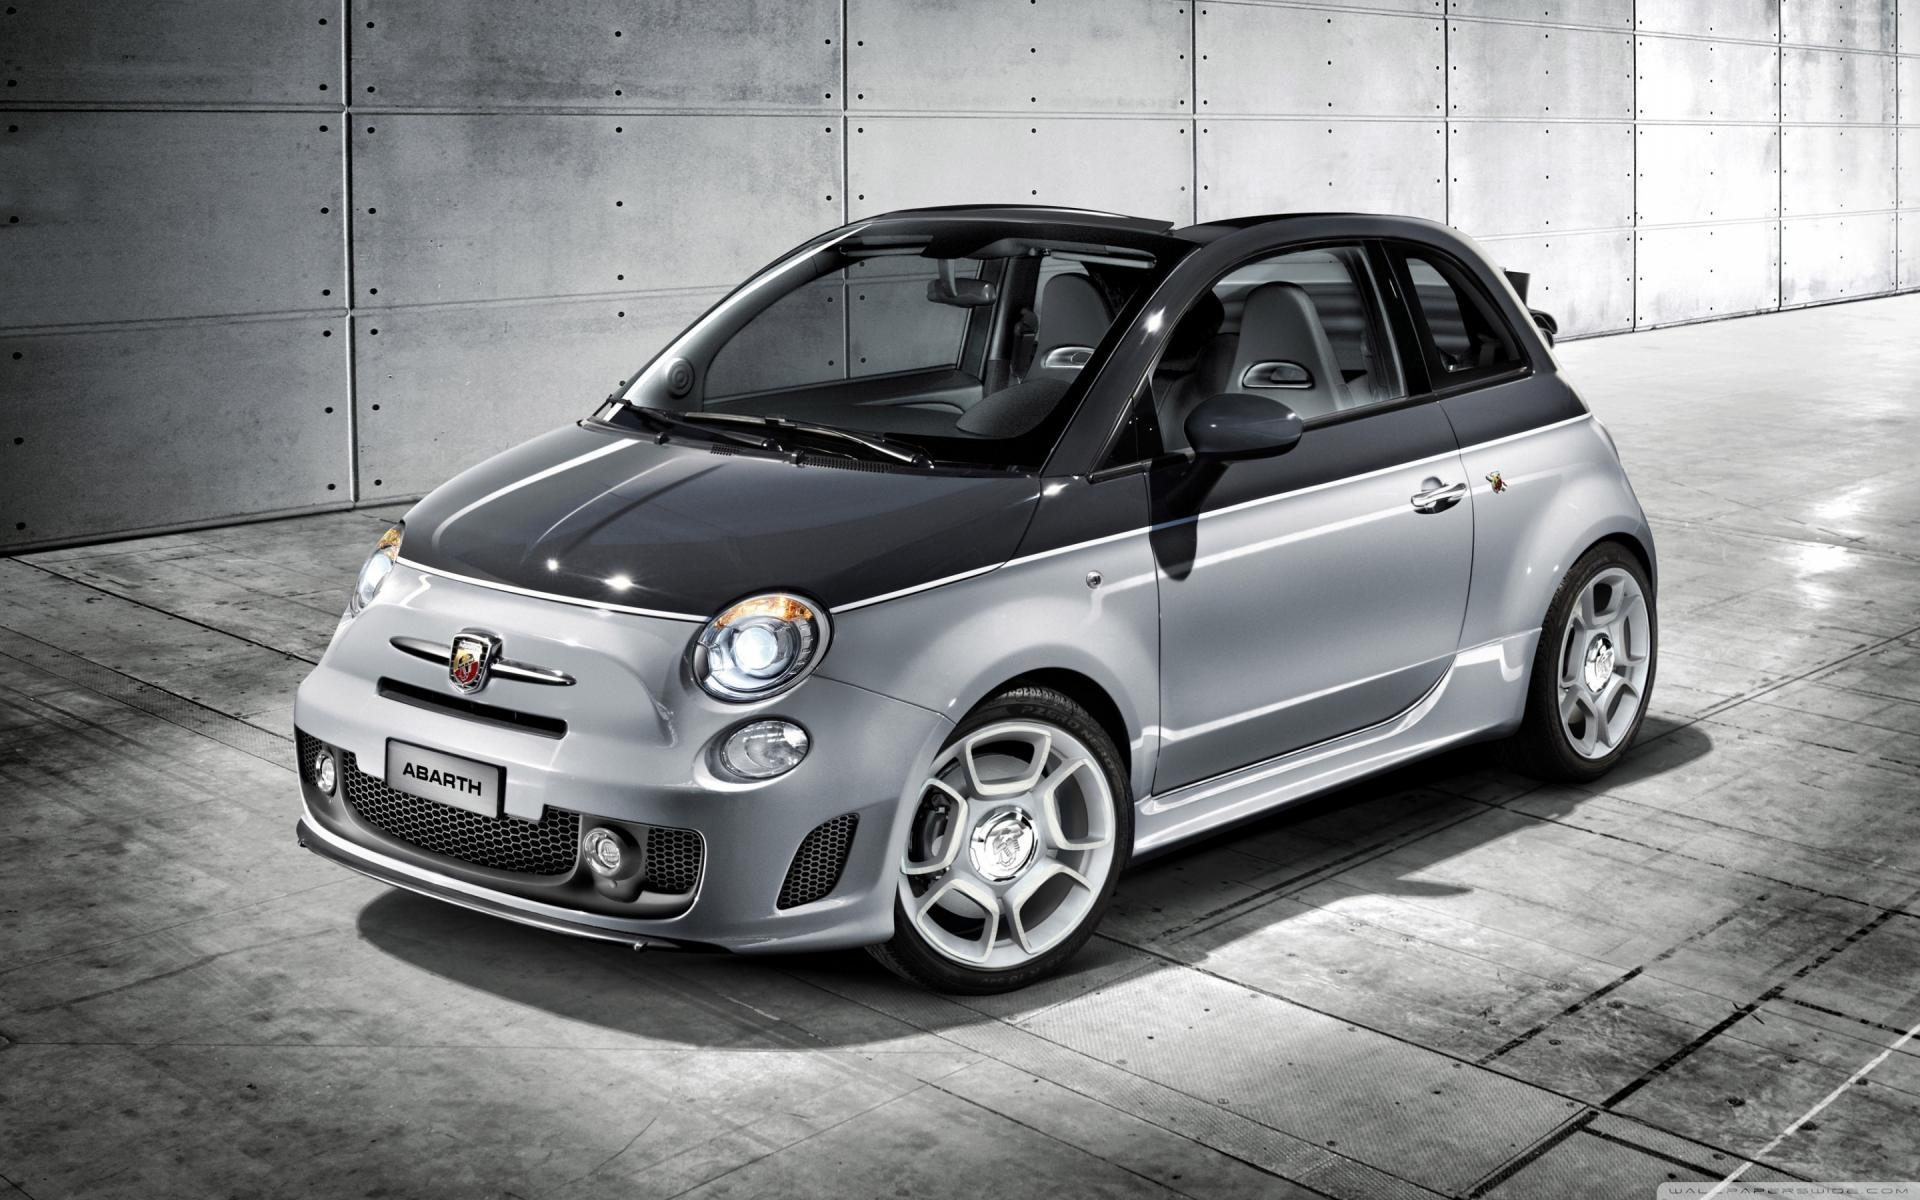 Wallpaper Blink - Fiat 500 Wallpaper HD 11 - 2880 X 1800 for Android ...